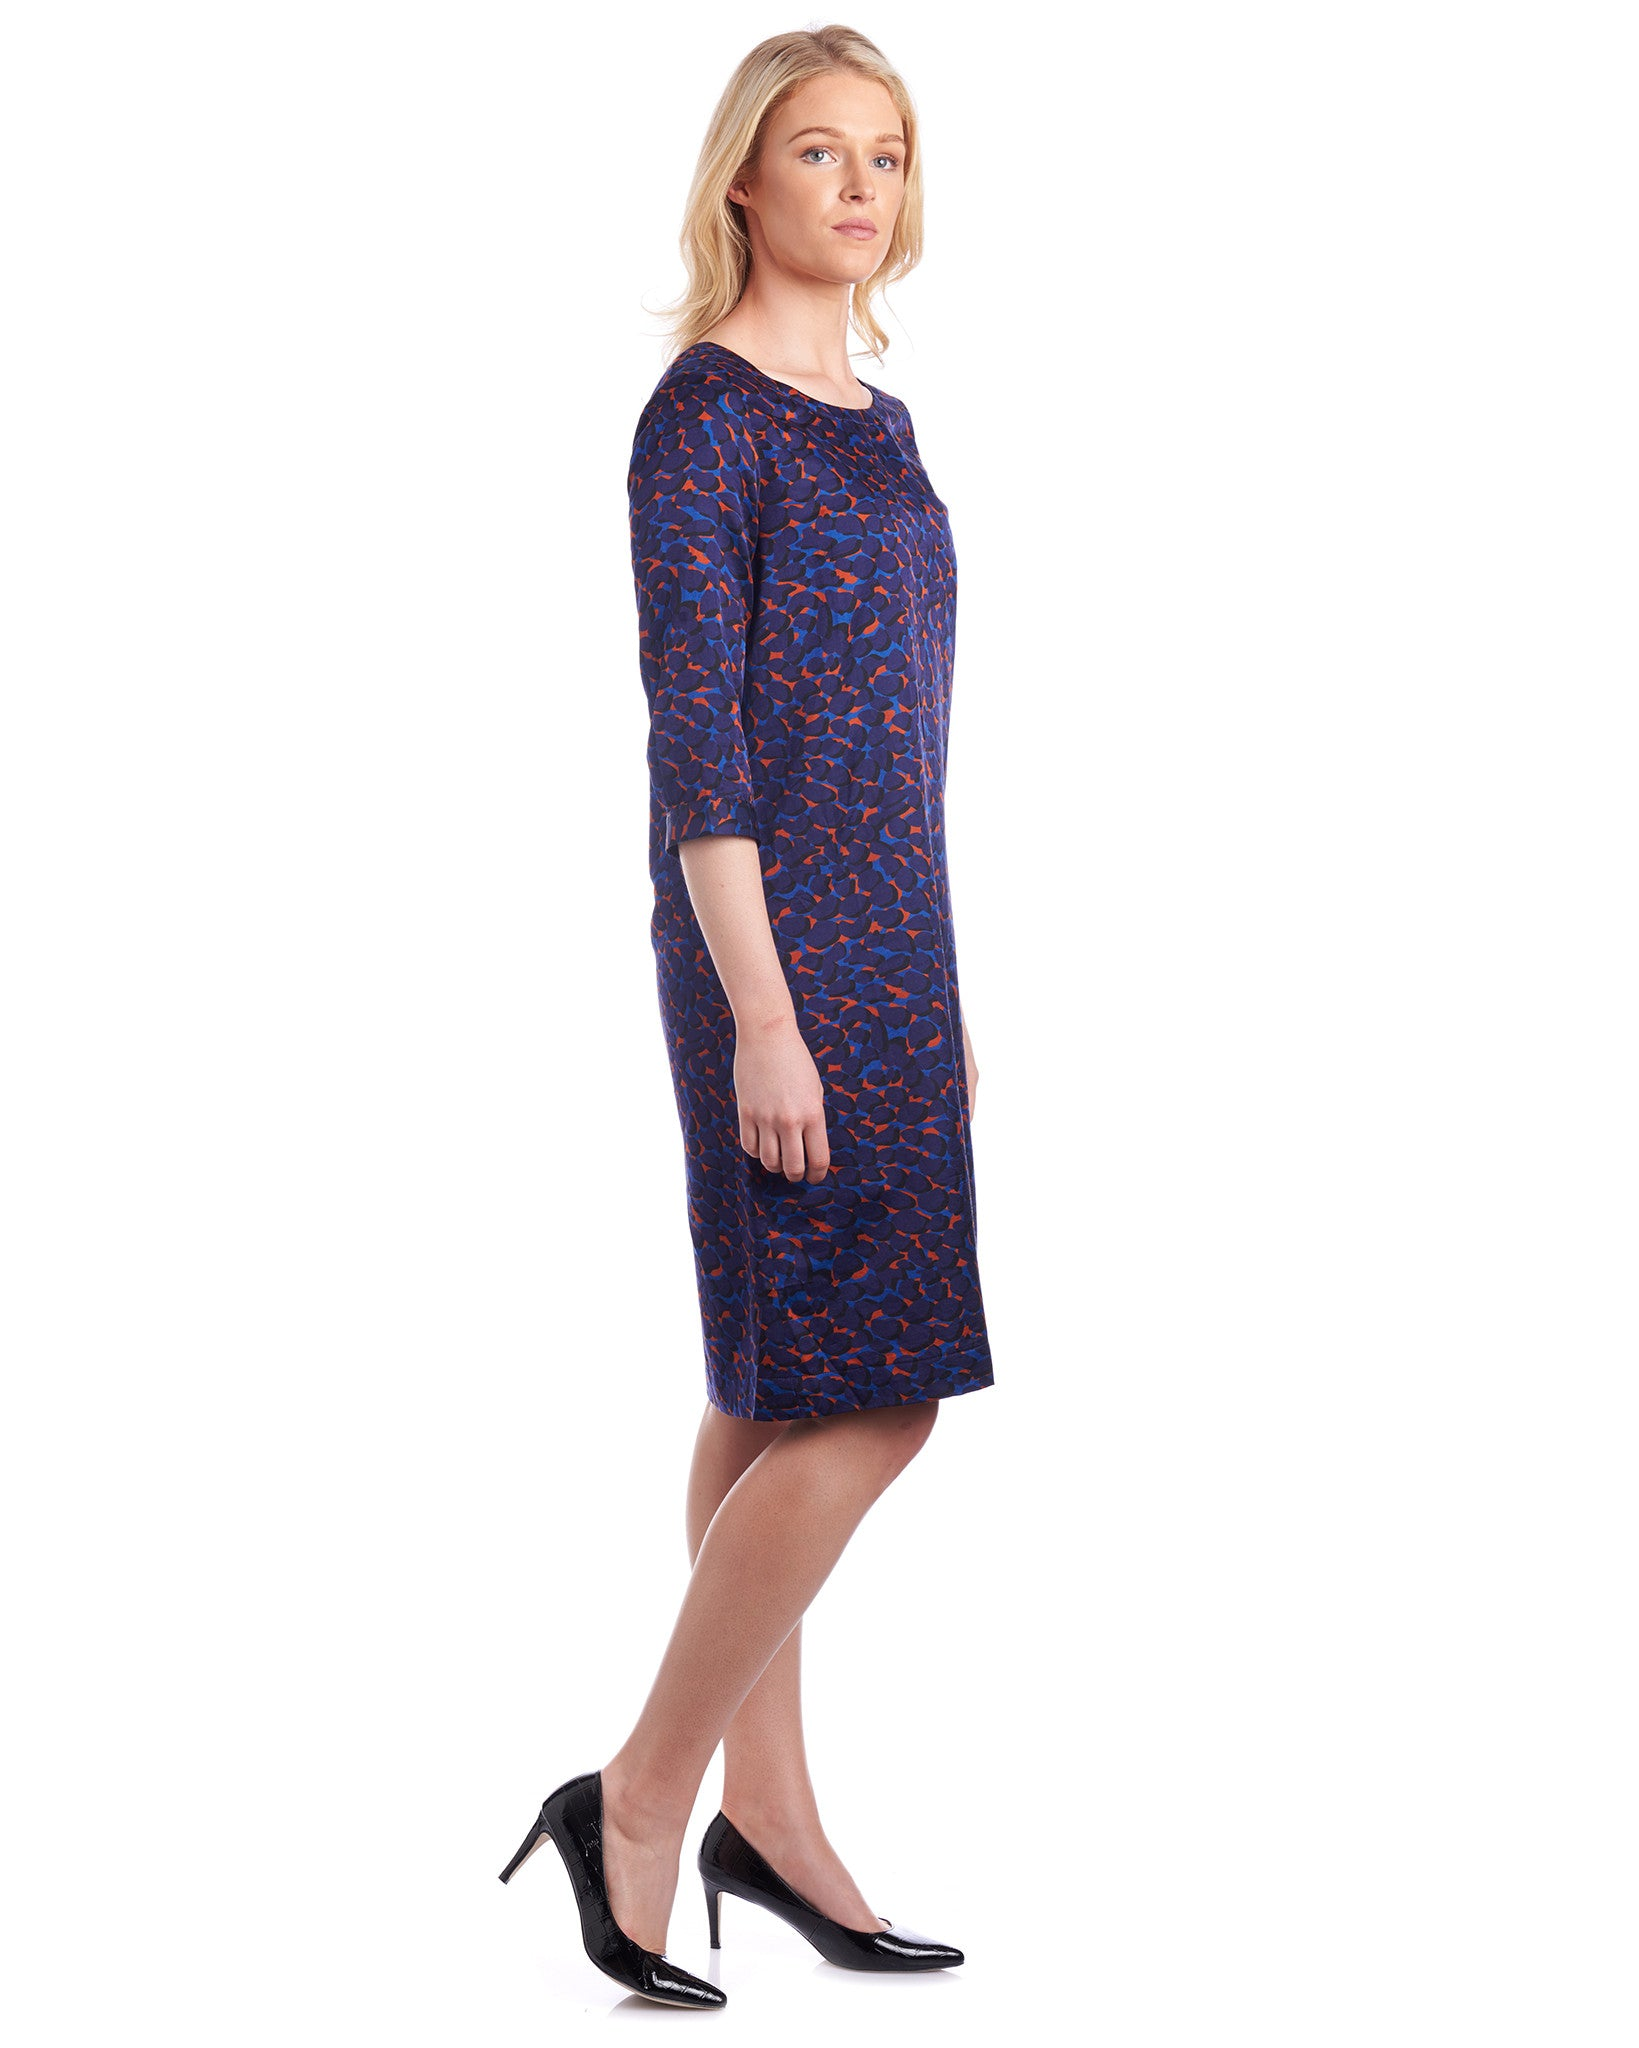 Silk dress with limited edition prints can be worn as a shift dress